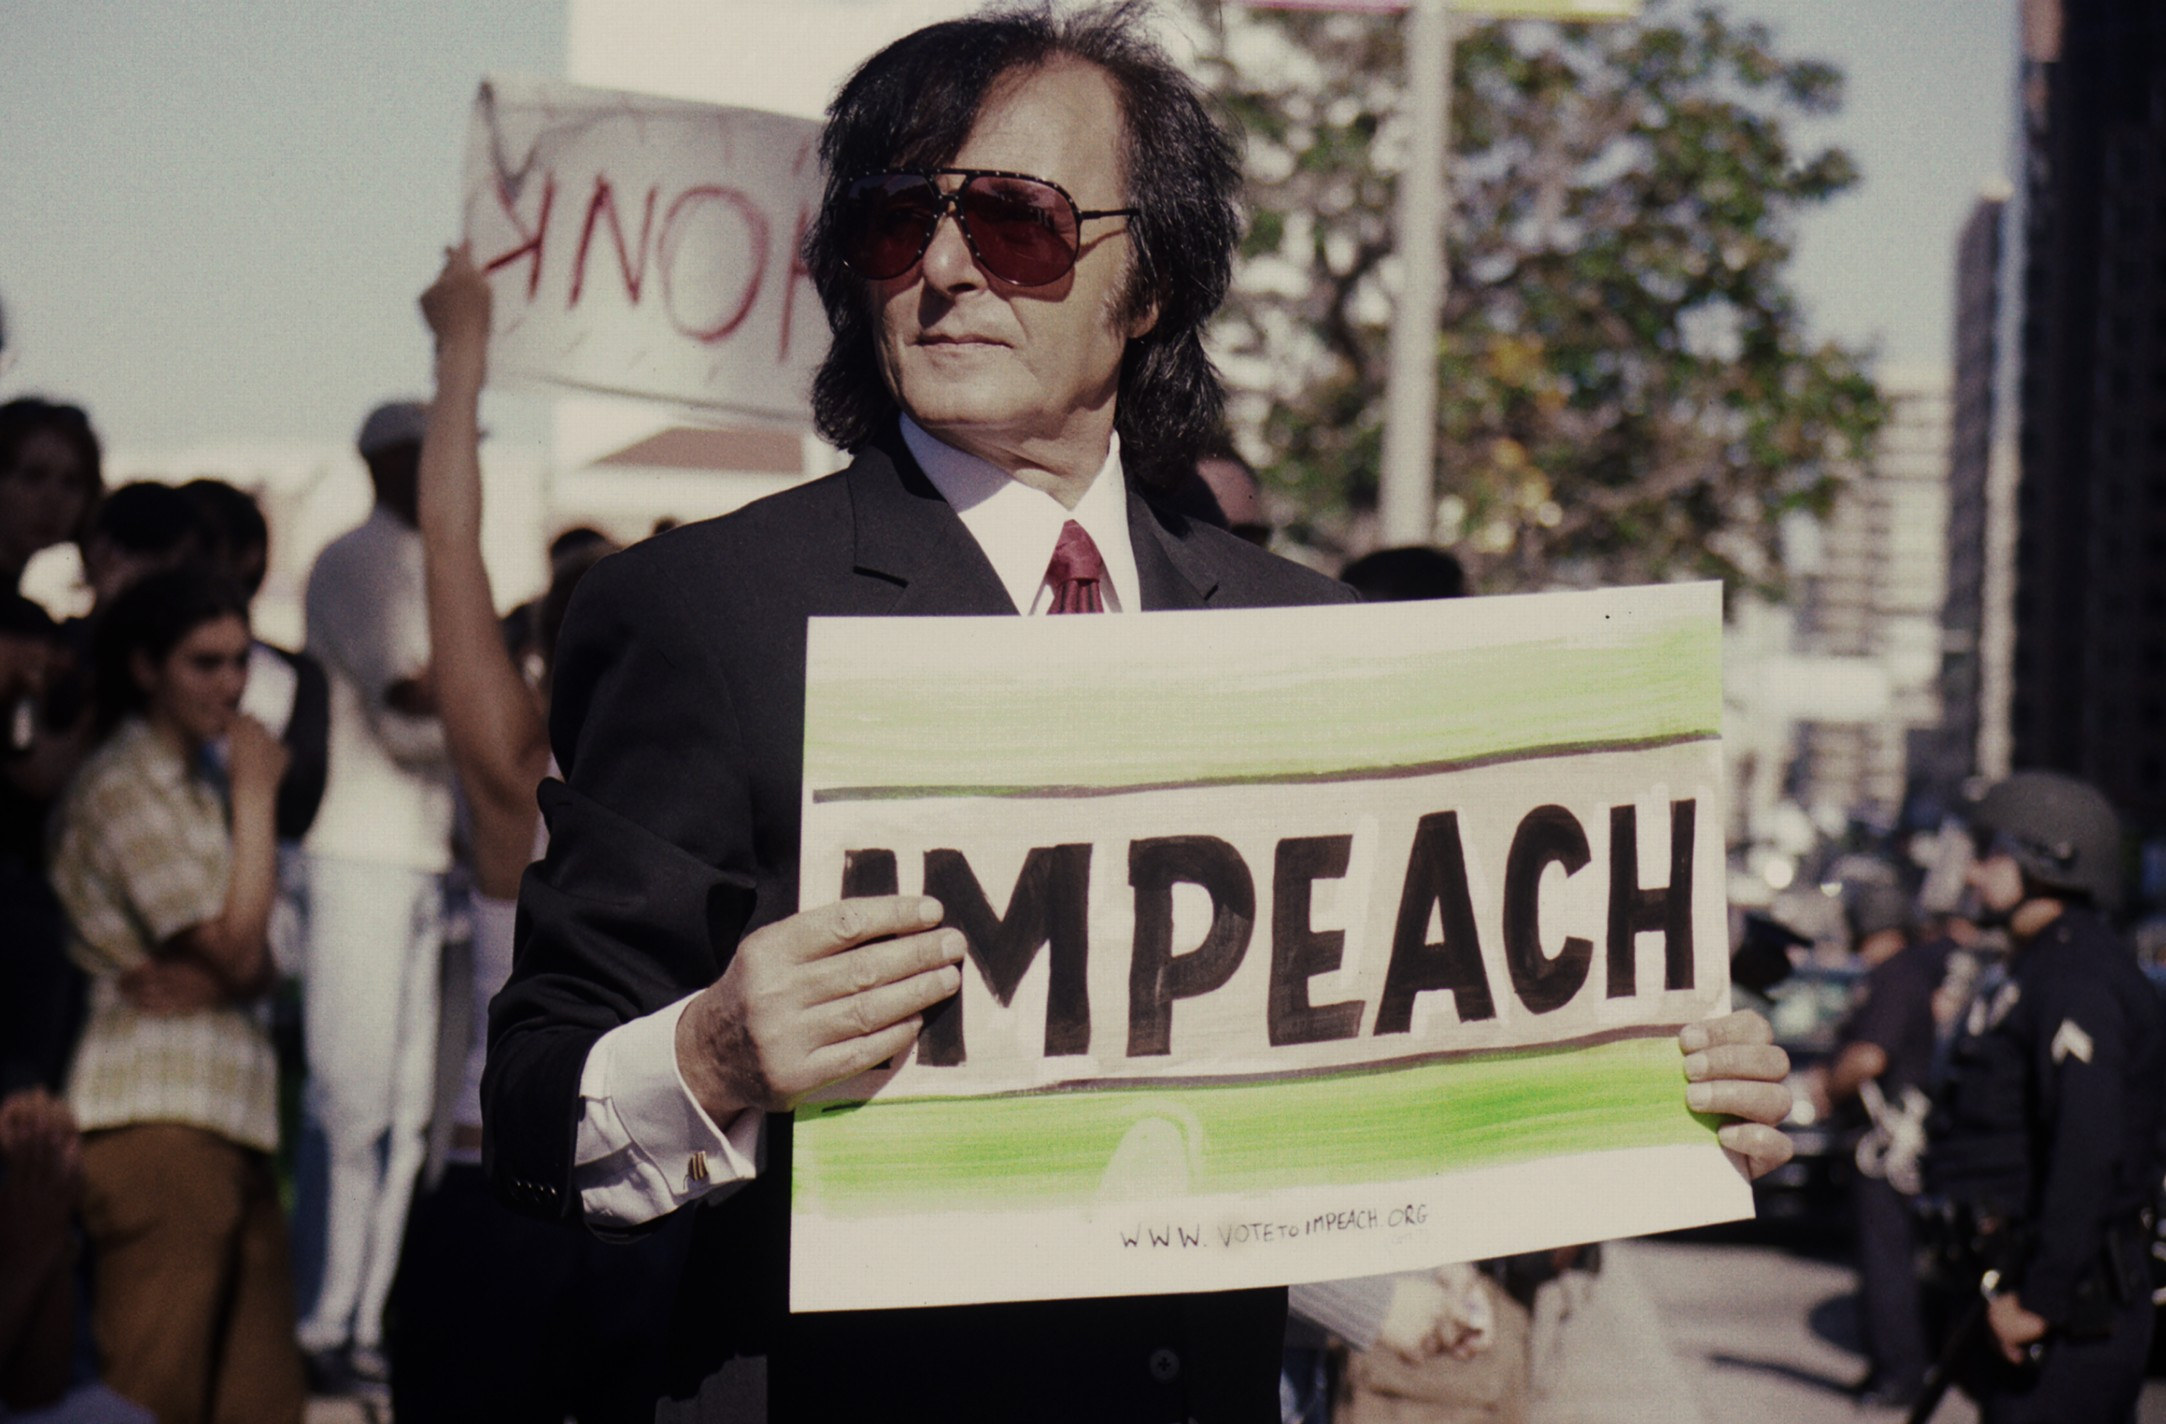 Andrea Geyer, Impeach, 2003/2020